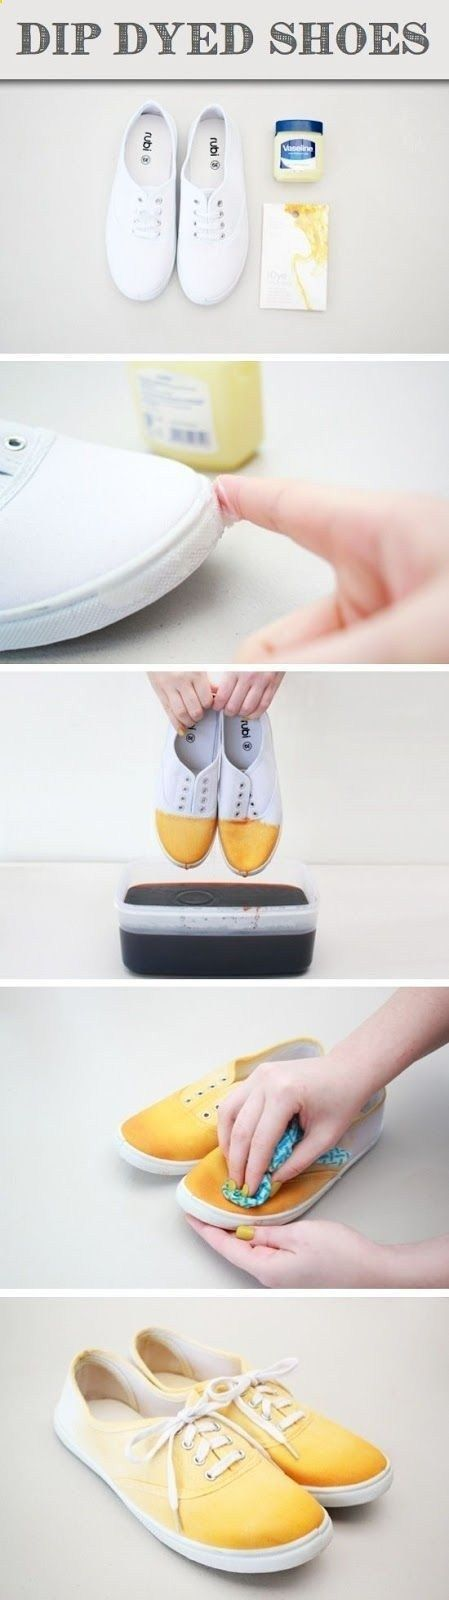 http://www.exquisitegirl.com/how-to-paint-your-shoes-and-personalize-them-to-your-liking/